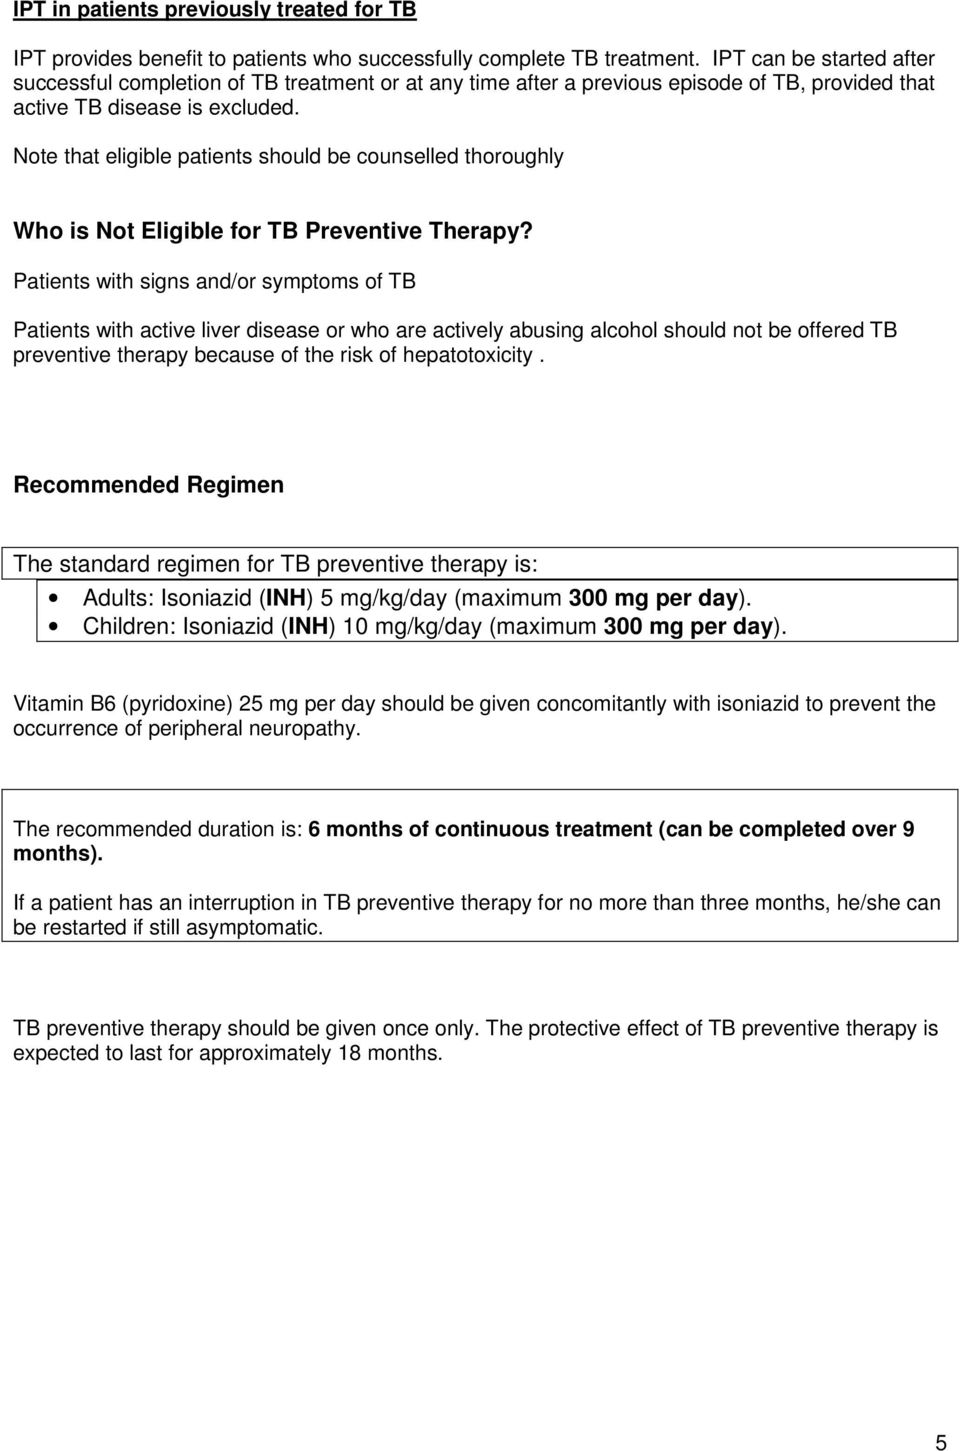 Note that eligible patients should be counselled thoroughly Who is Not Eligible for TB Preventive Therapy?